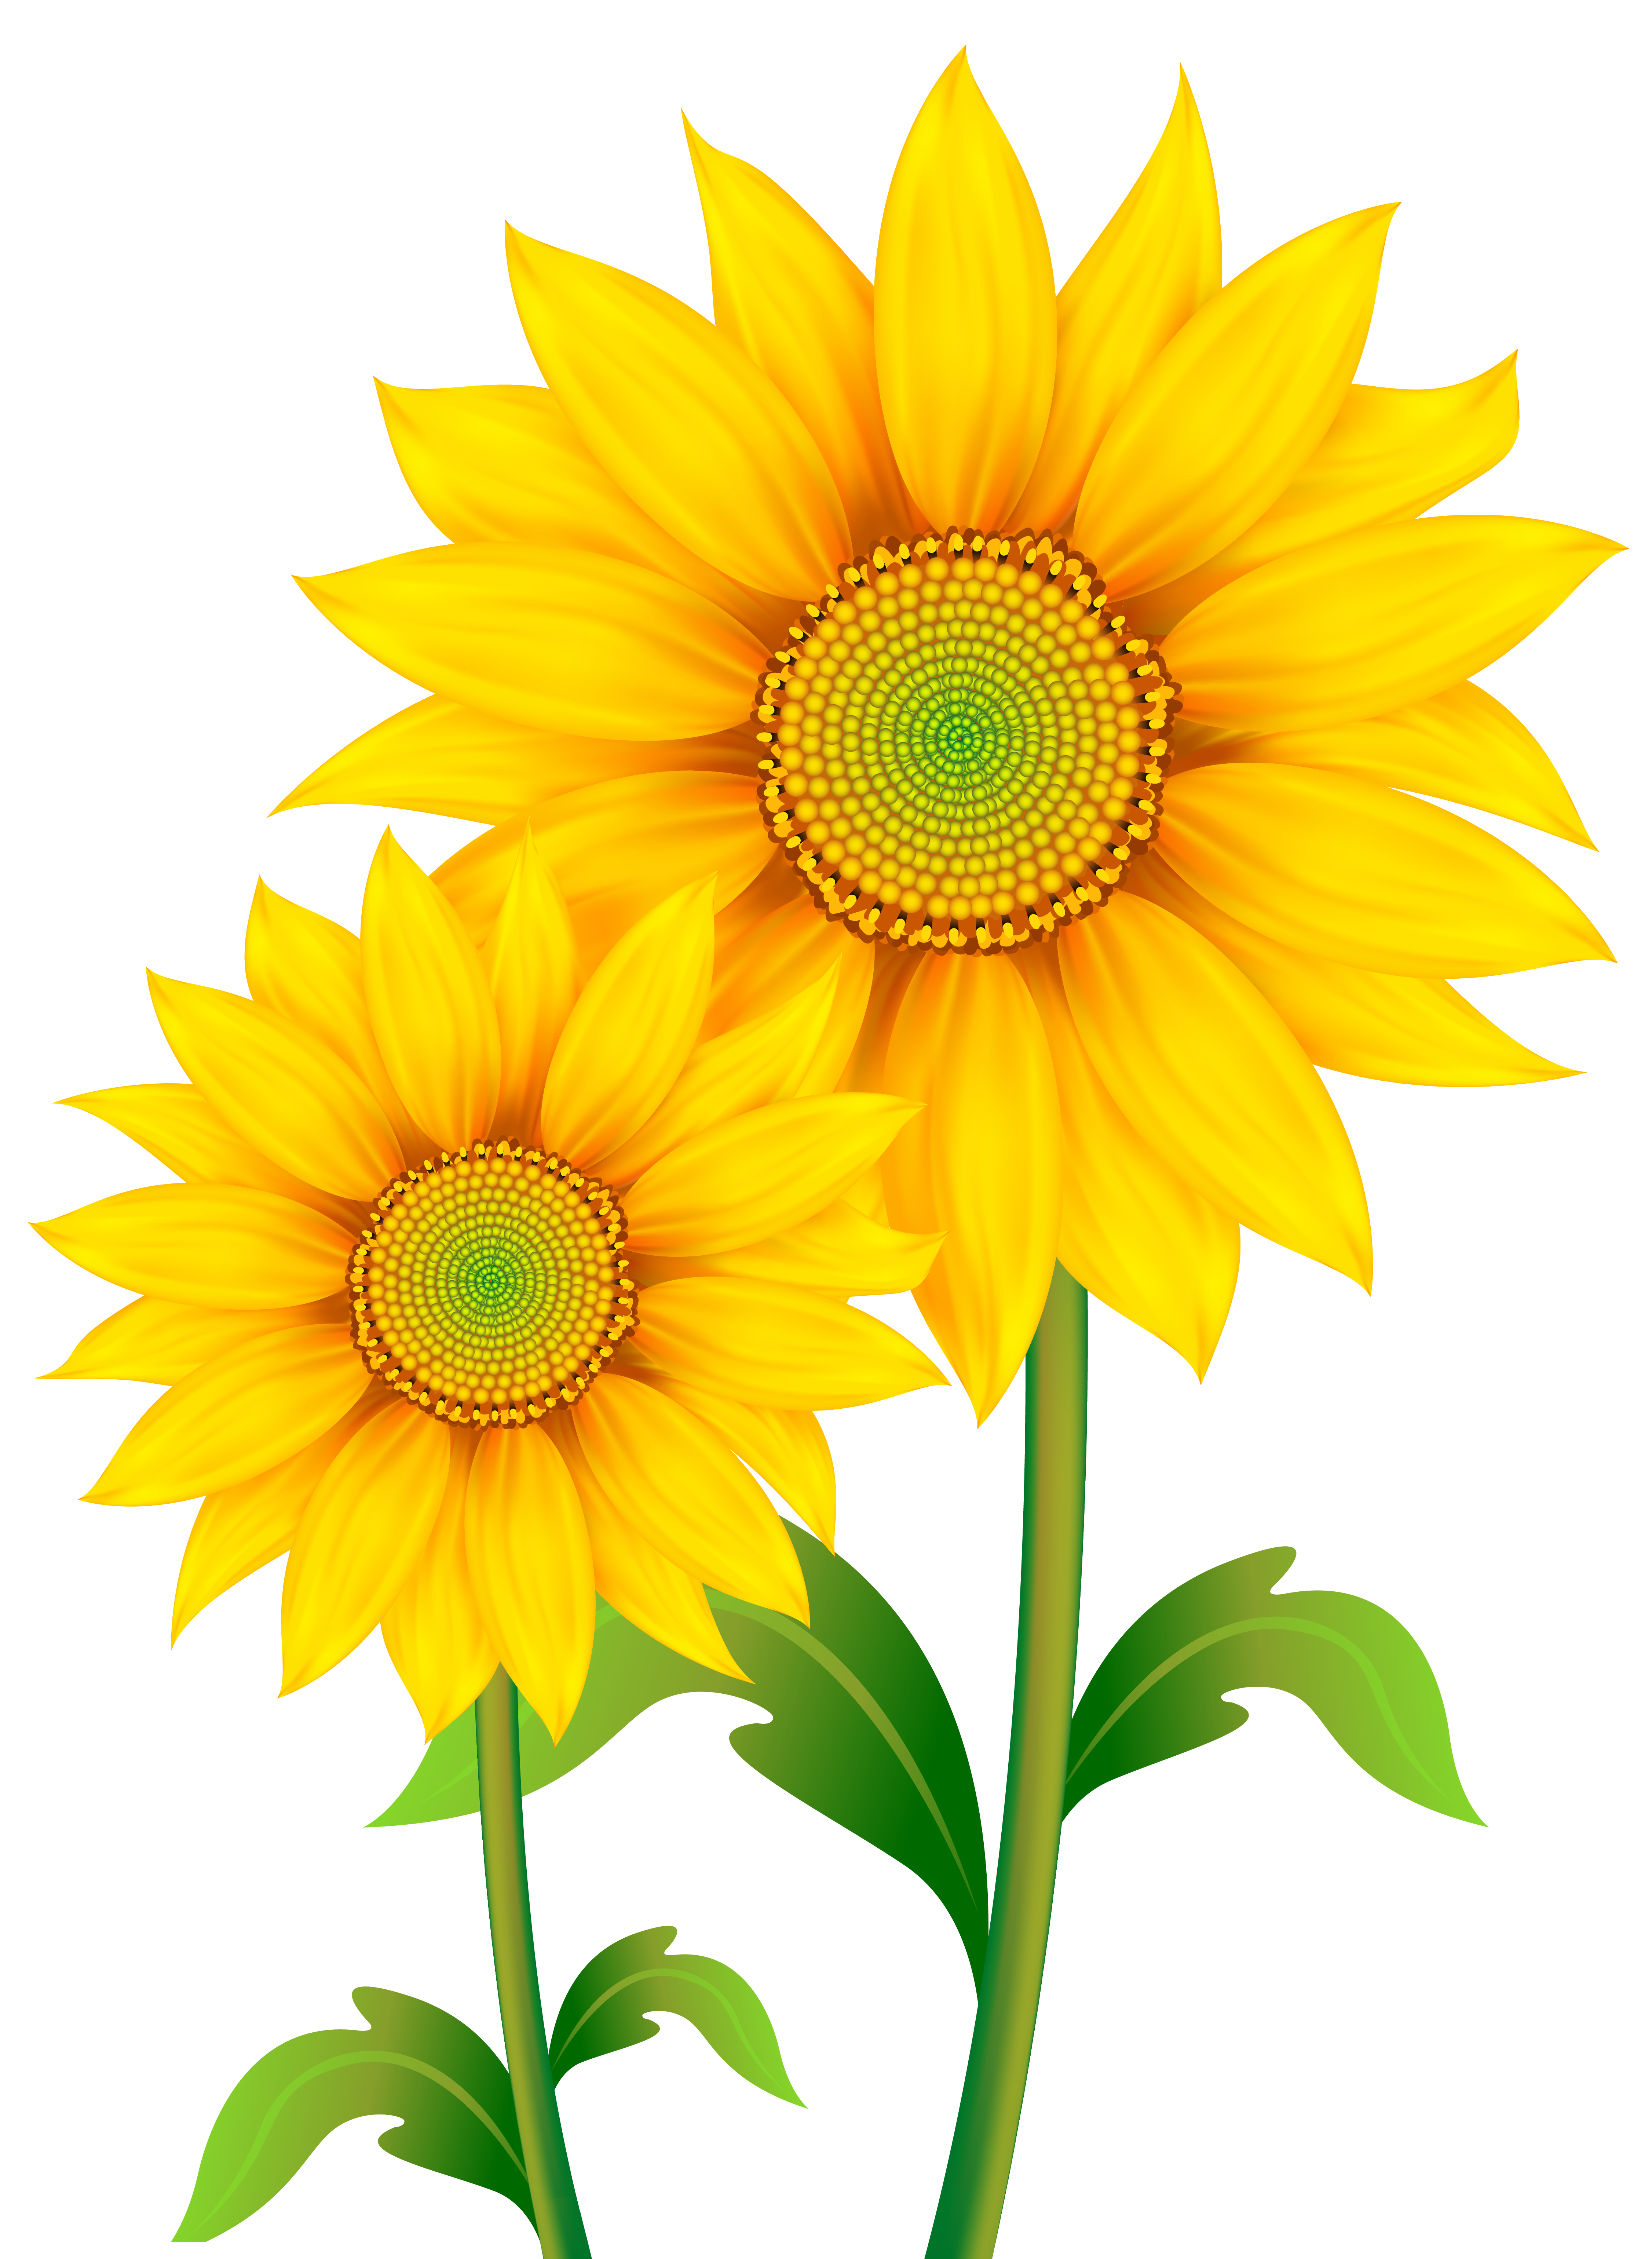 Sunflowers clipart sign svg freeuse download Common sunflower Clip art - Transparent Sunflowers Clipart ... svg freeuse download